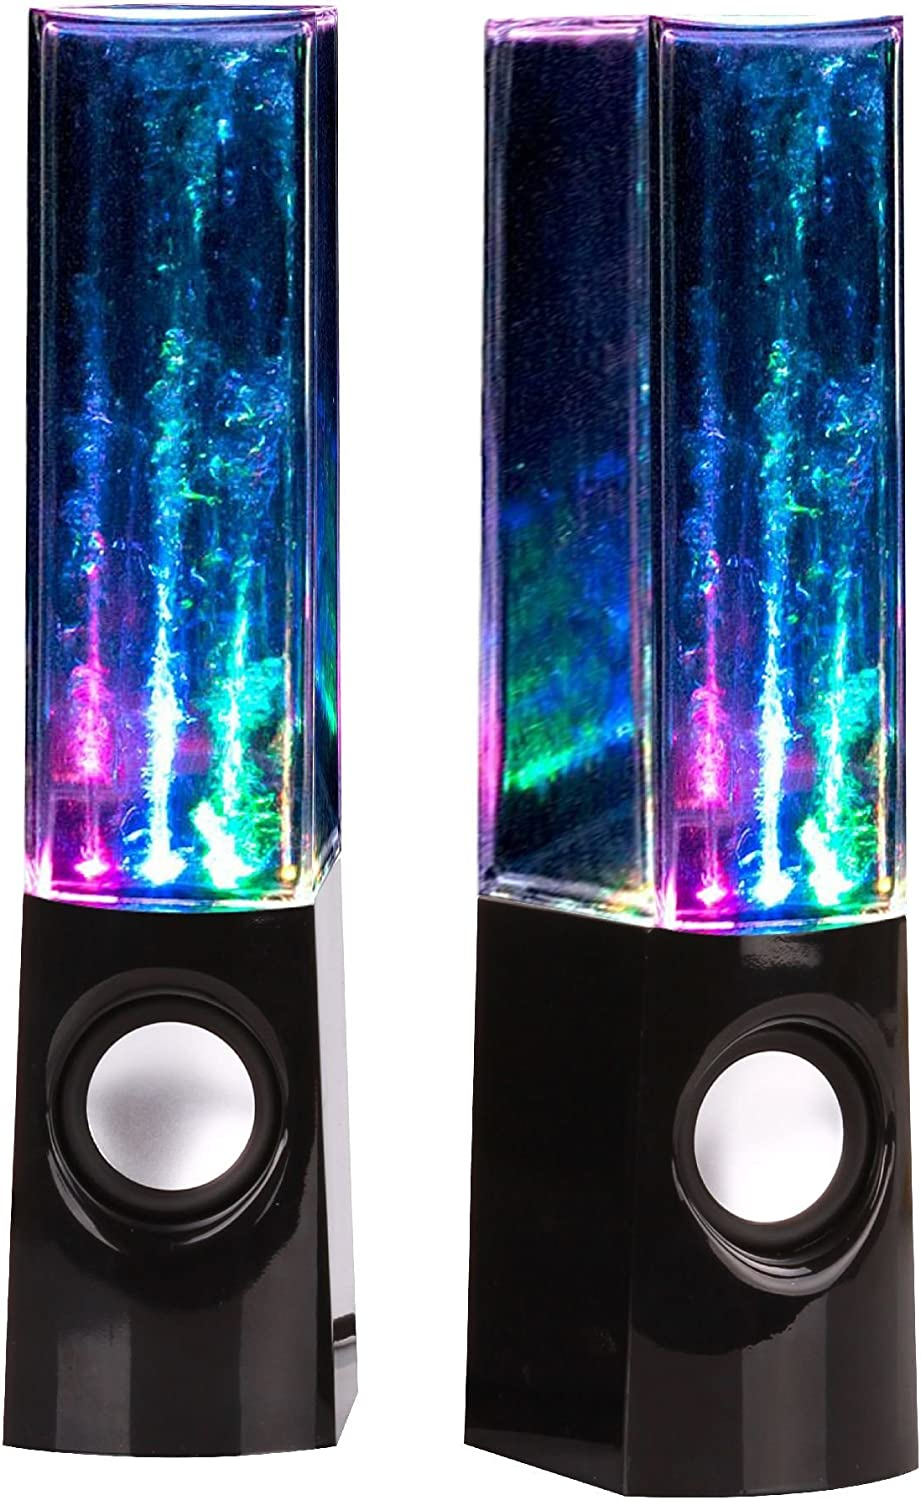 Bolan Plug /& Play Multi-Color Illuminated Dancing Water Speaker Light Show Water